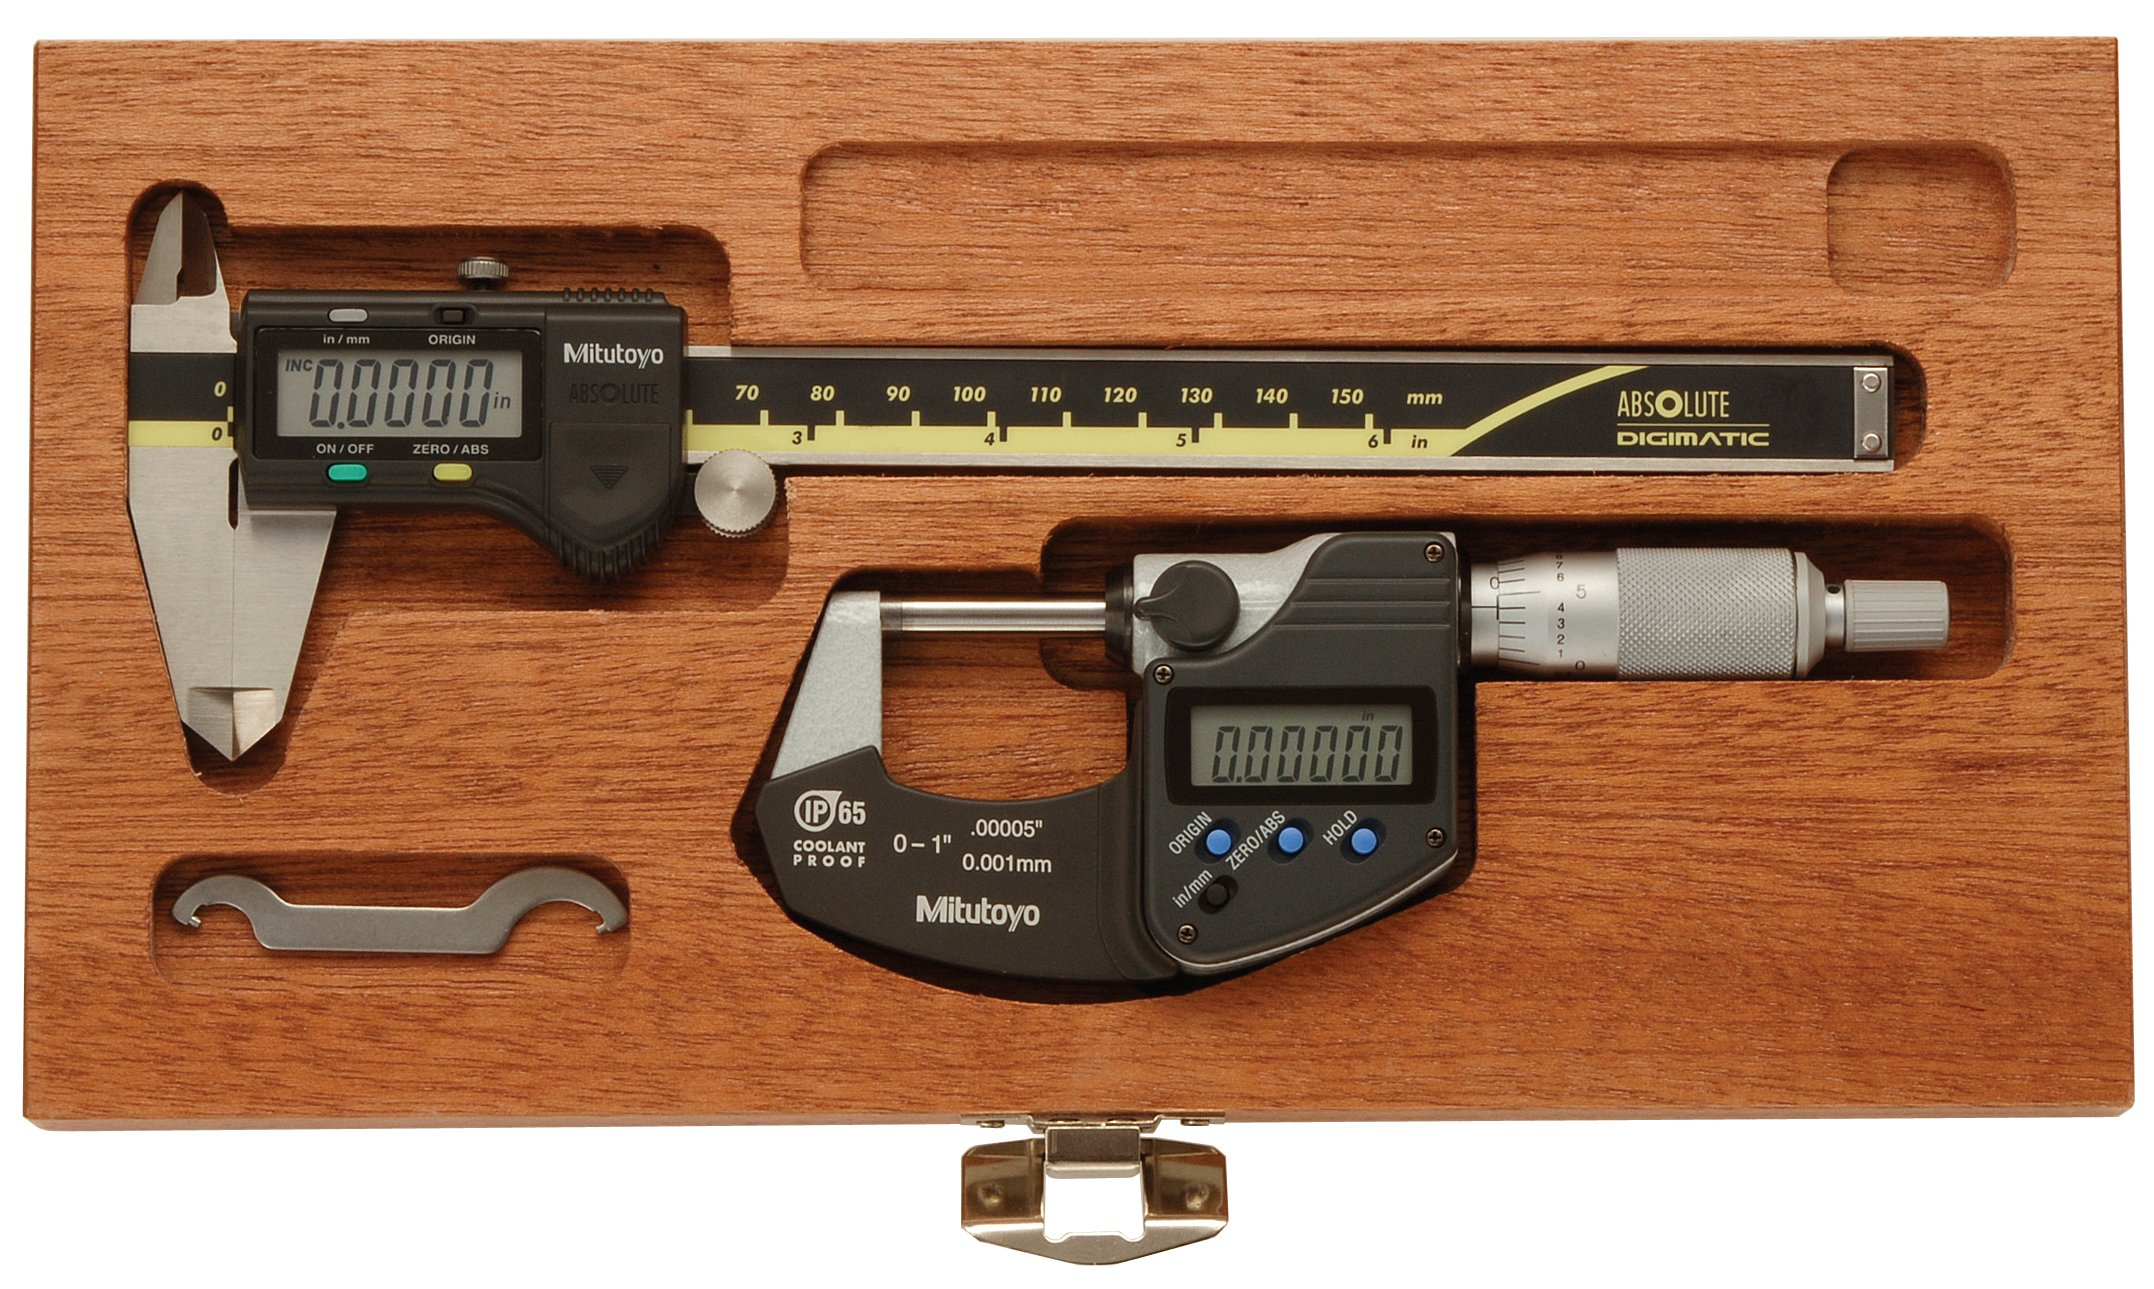 Mitutoyo 950-939-9, Digimatic Tool Kit, IP 65 0-1'' Digimatic Ratchet Micrometer, 6'' Digimatic Digital Caliper, In Mahogany Case